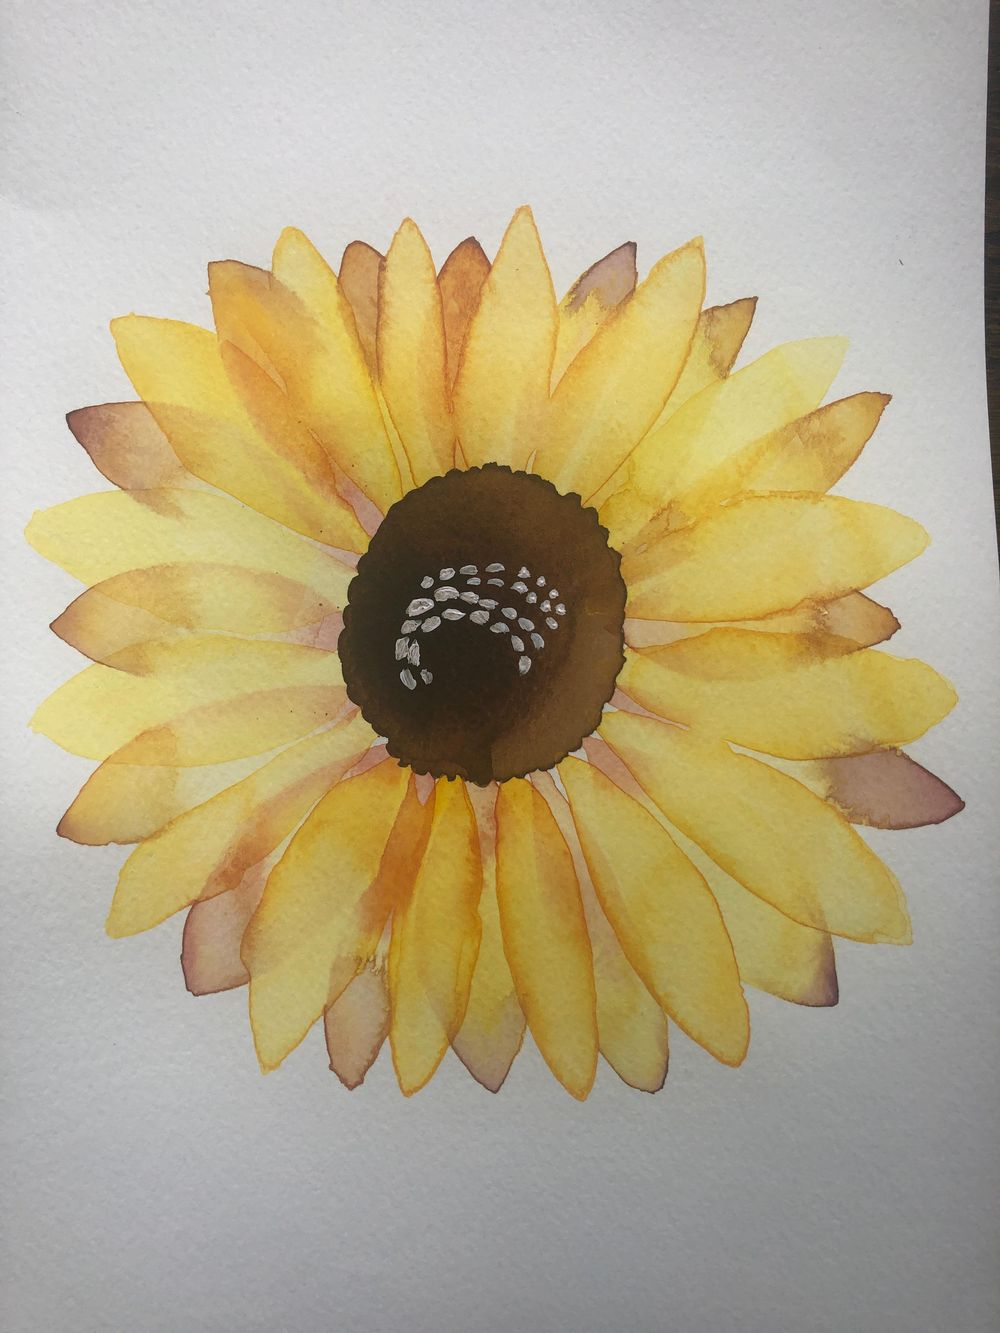 Modern Botanical Watercolors - What a Blast! - image 4 - student project